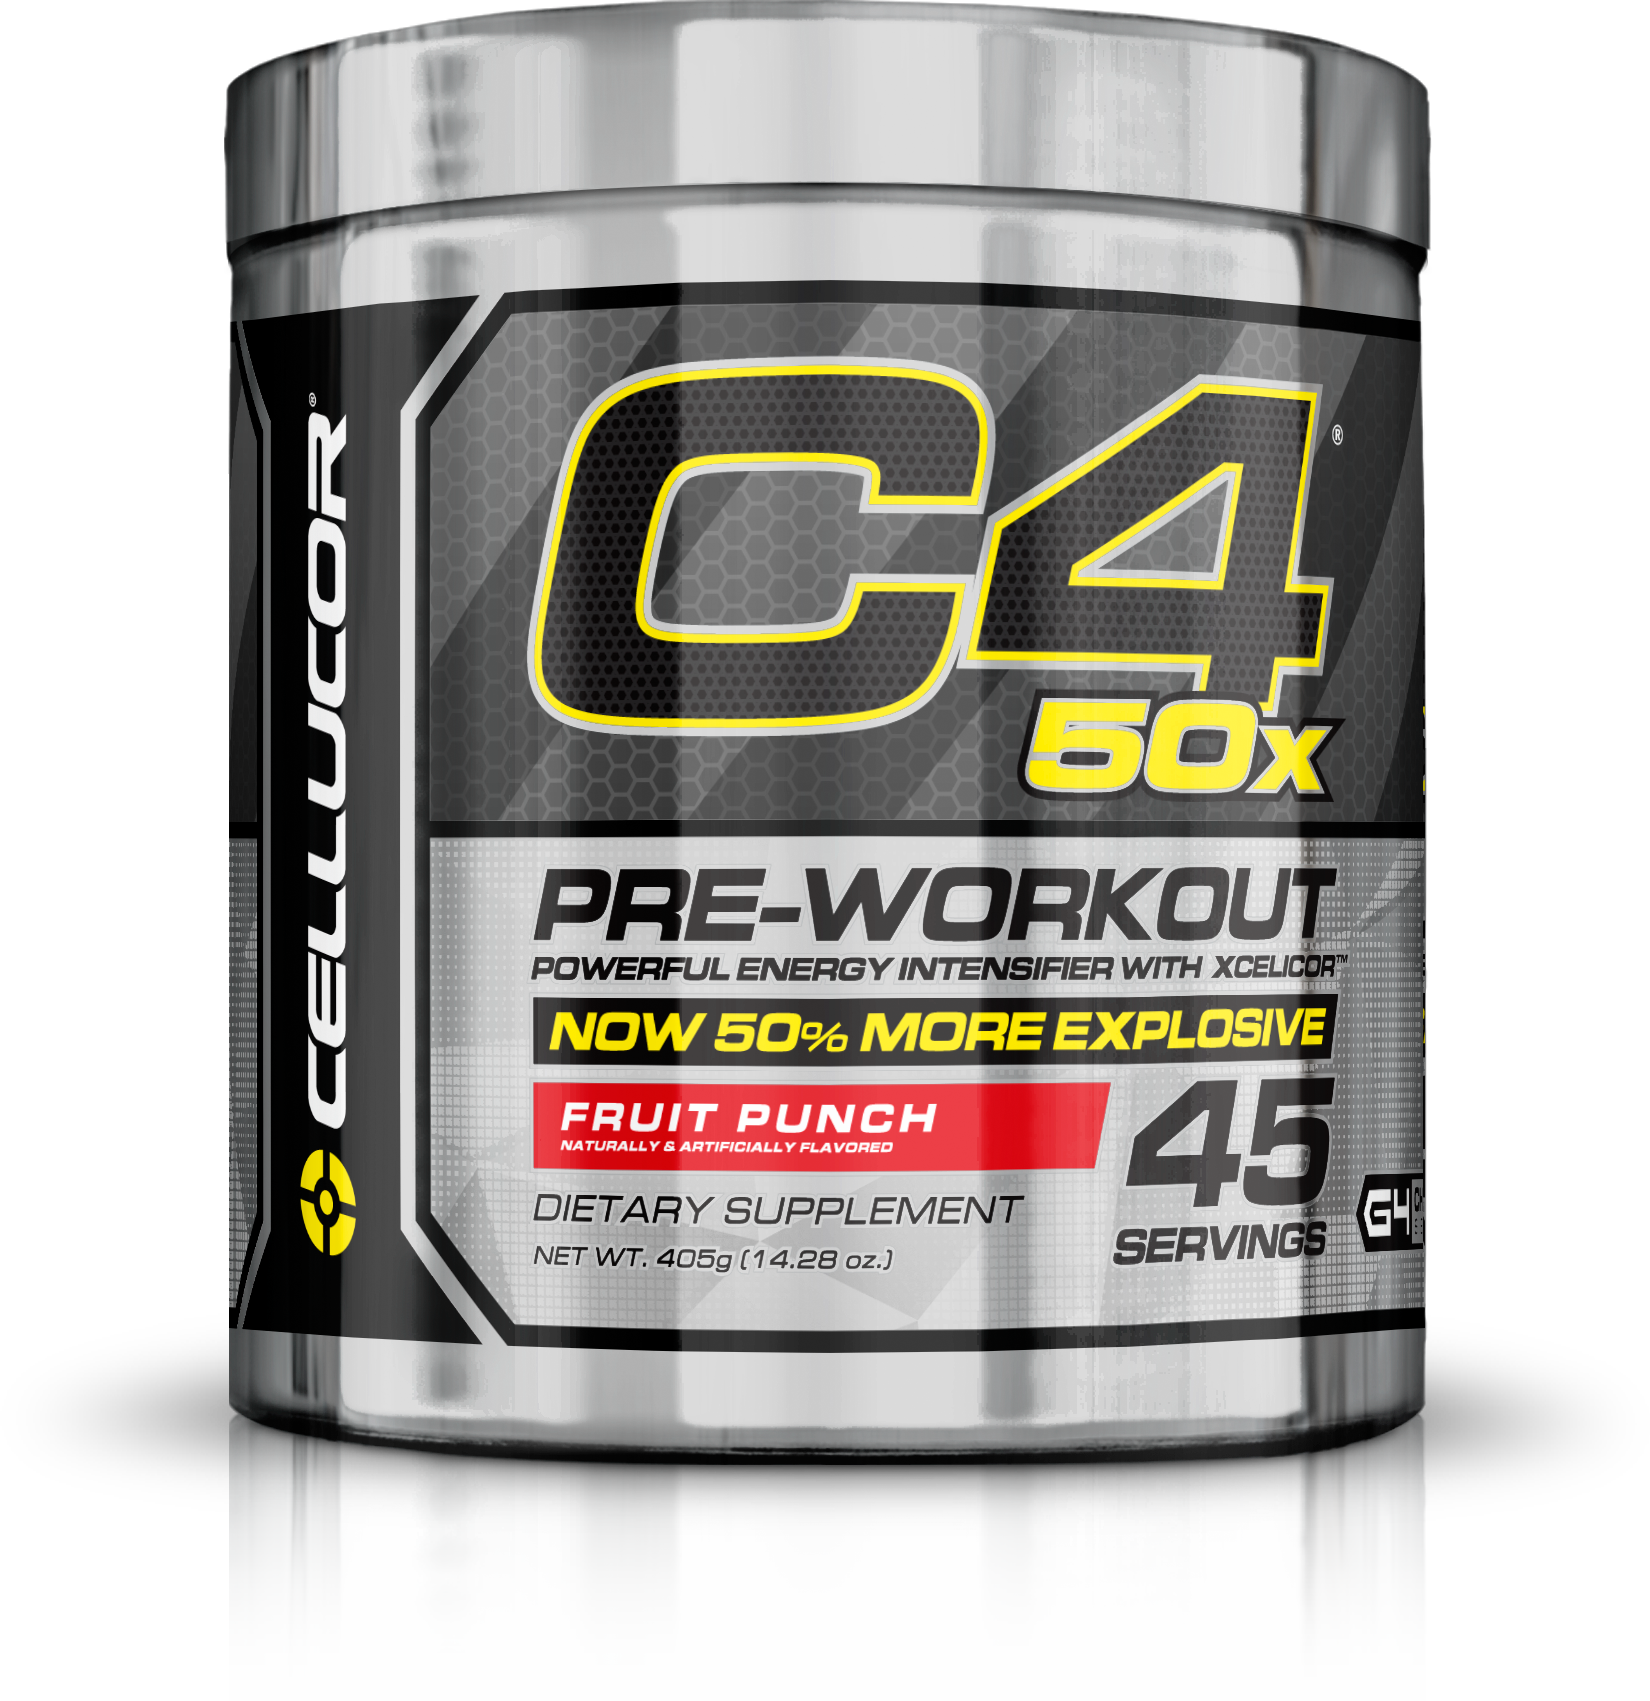 Cellucor, Innovator Behind the Pre-Workout Supplement, C4, Releases C4 50X as a Stronger ...